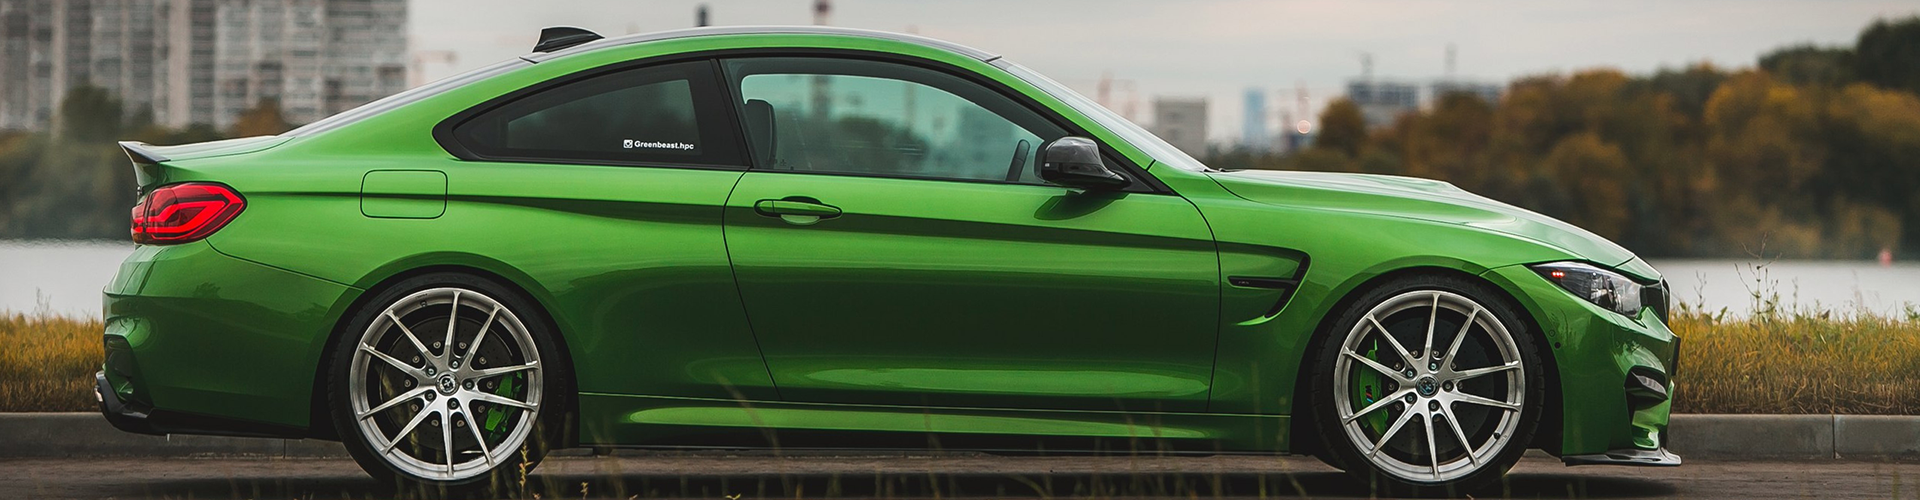 https://abload.de/img/bmw_m4_green_signaturh9ktl.png